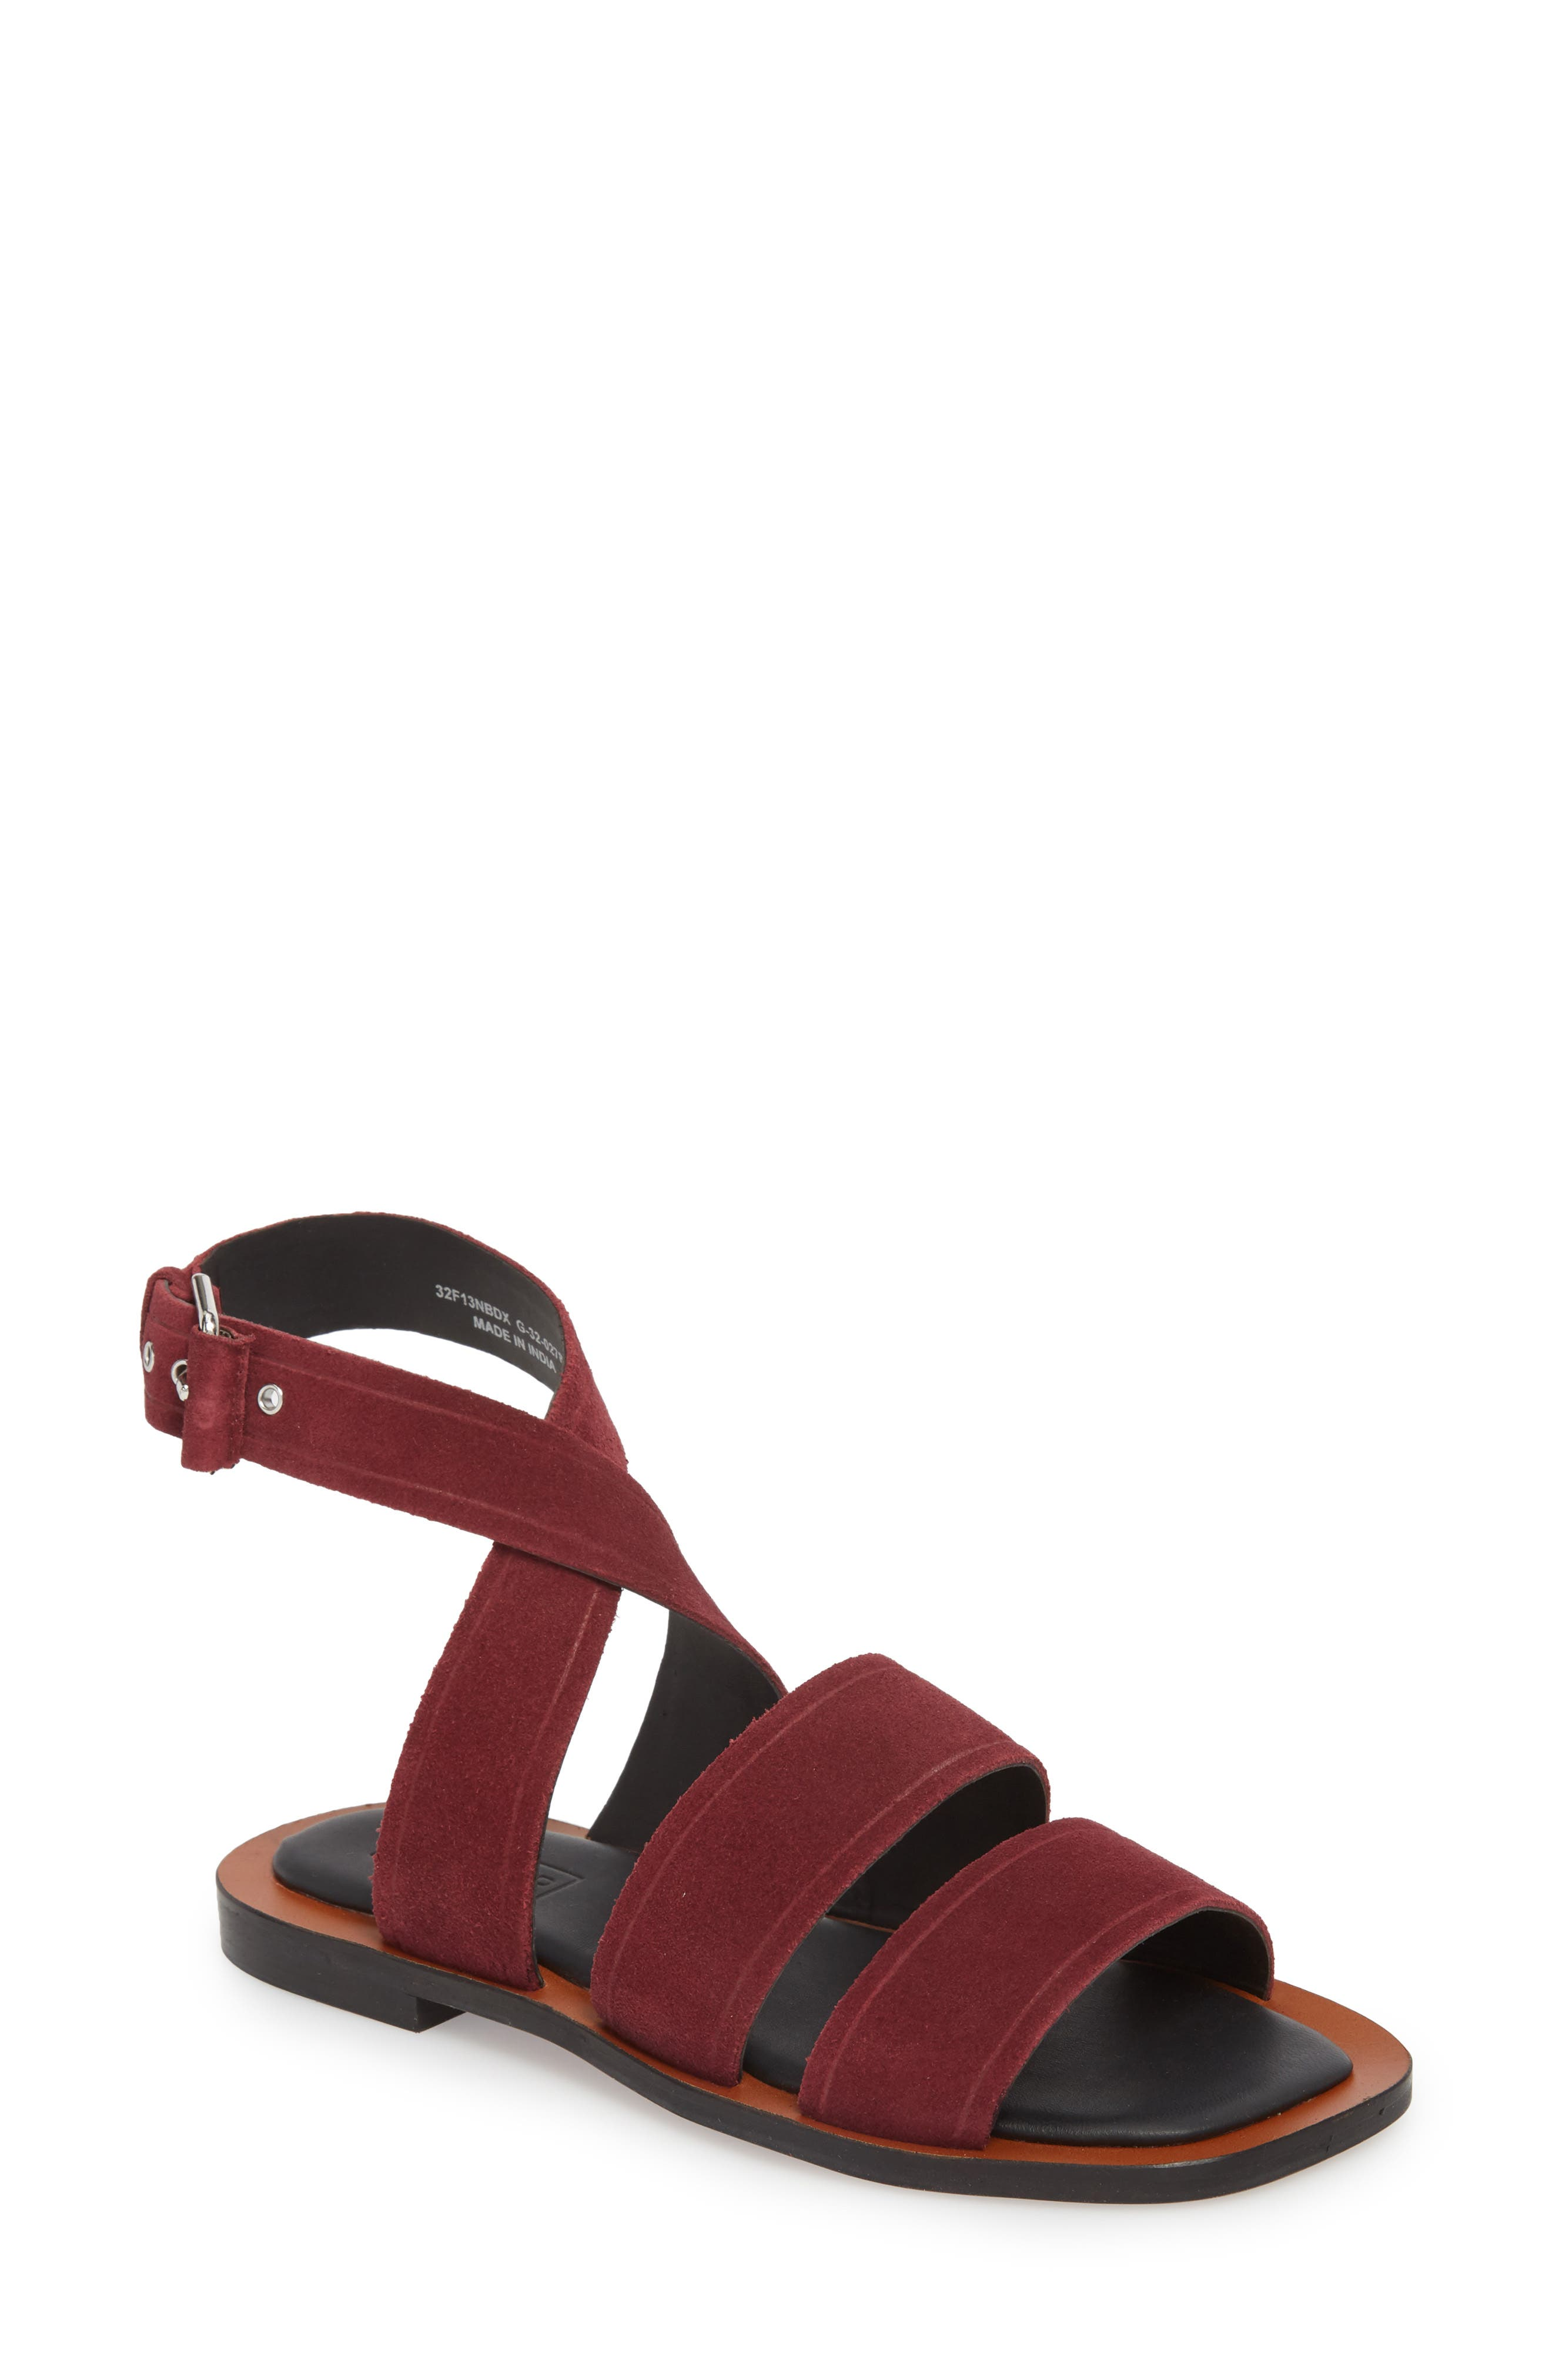 Fume Strappy Sandal,                             Main thumbnail 1, color,                             Burgundy Multi